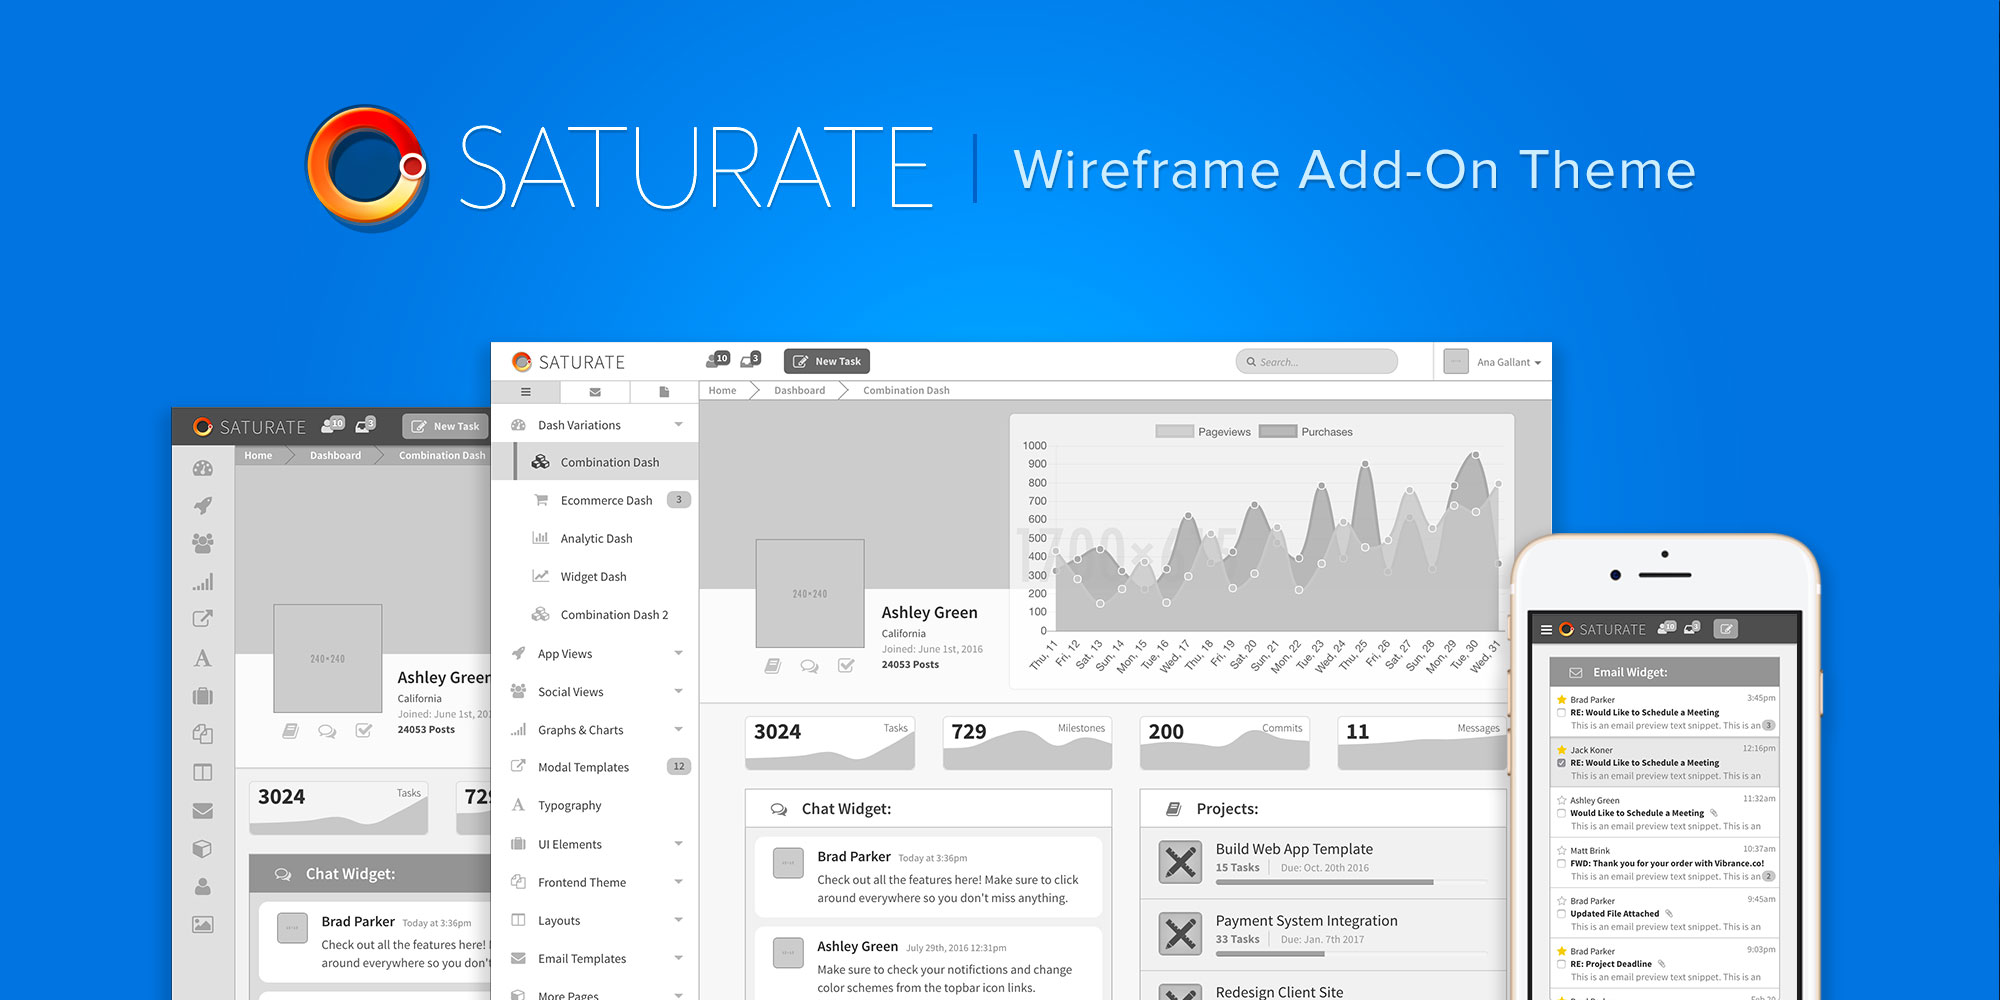 Saturate wireframe preview enlarged